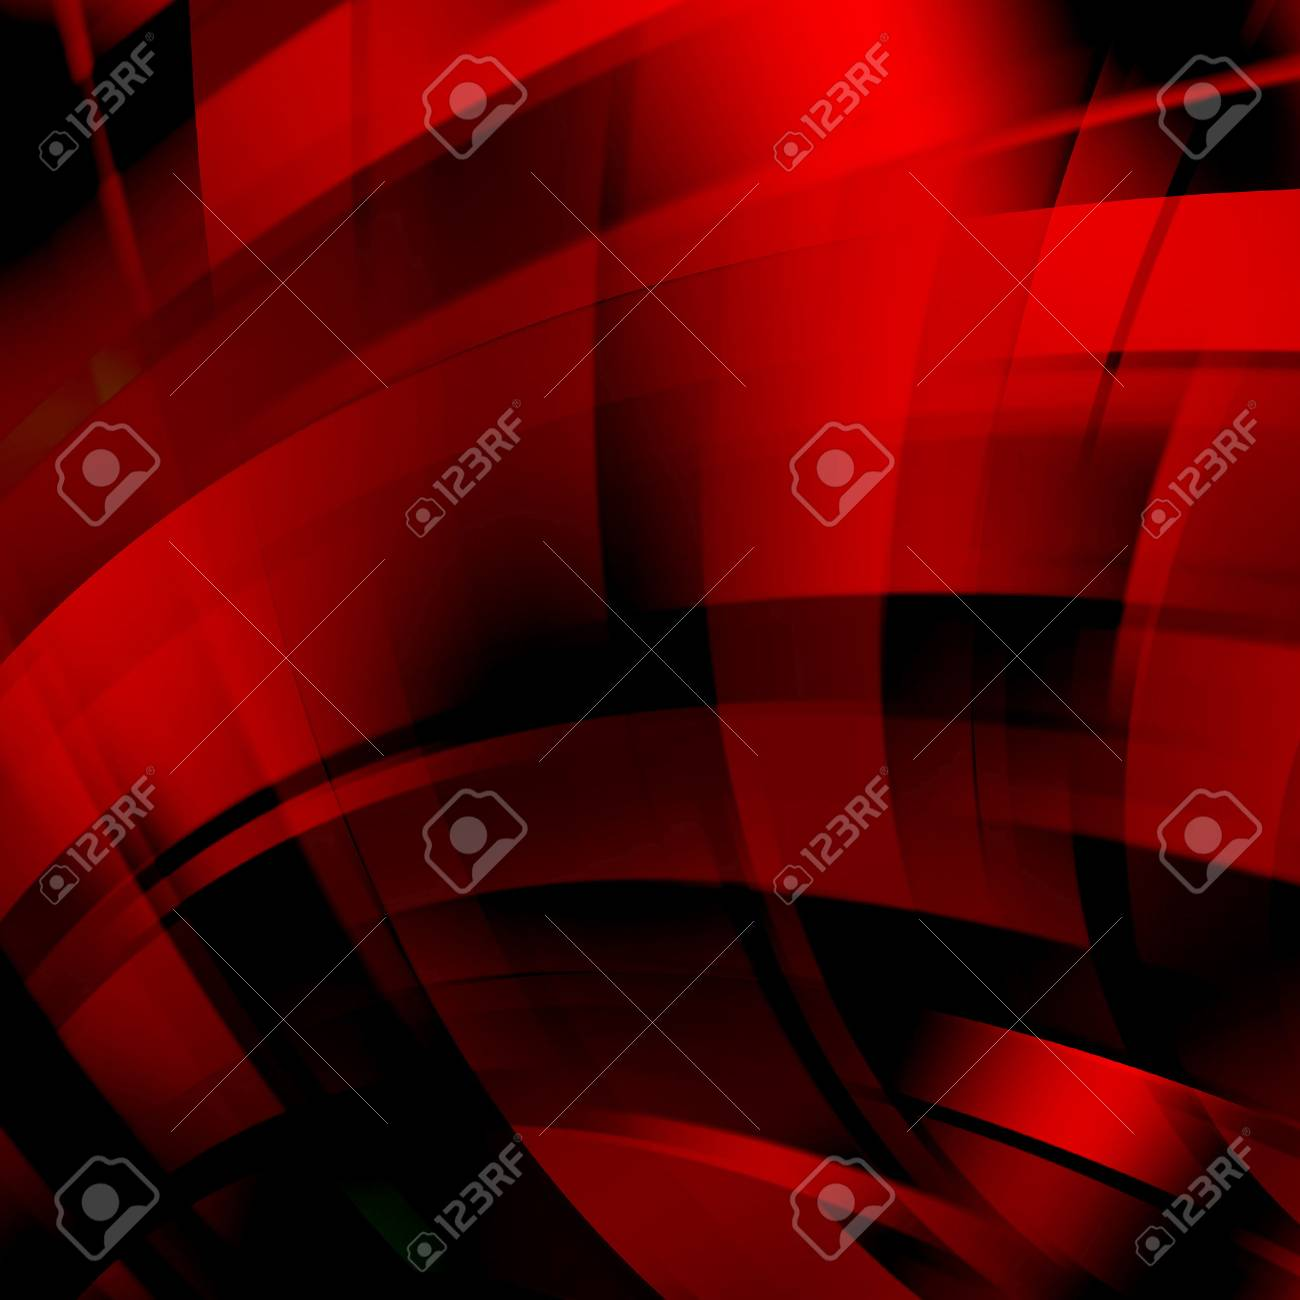 Abstract colorful background with swirl waves. Abstract background design. vector illustration. Red, black colors. - 53302434